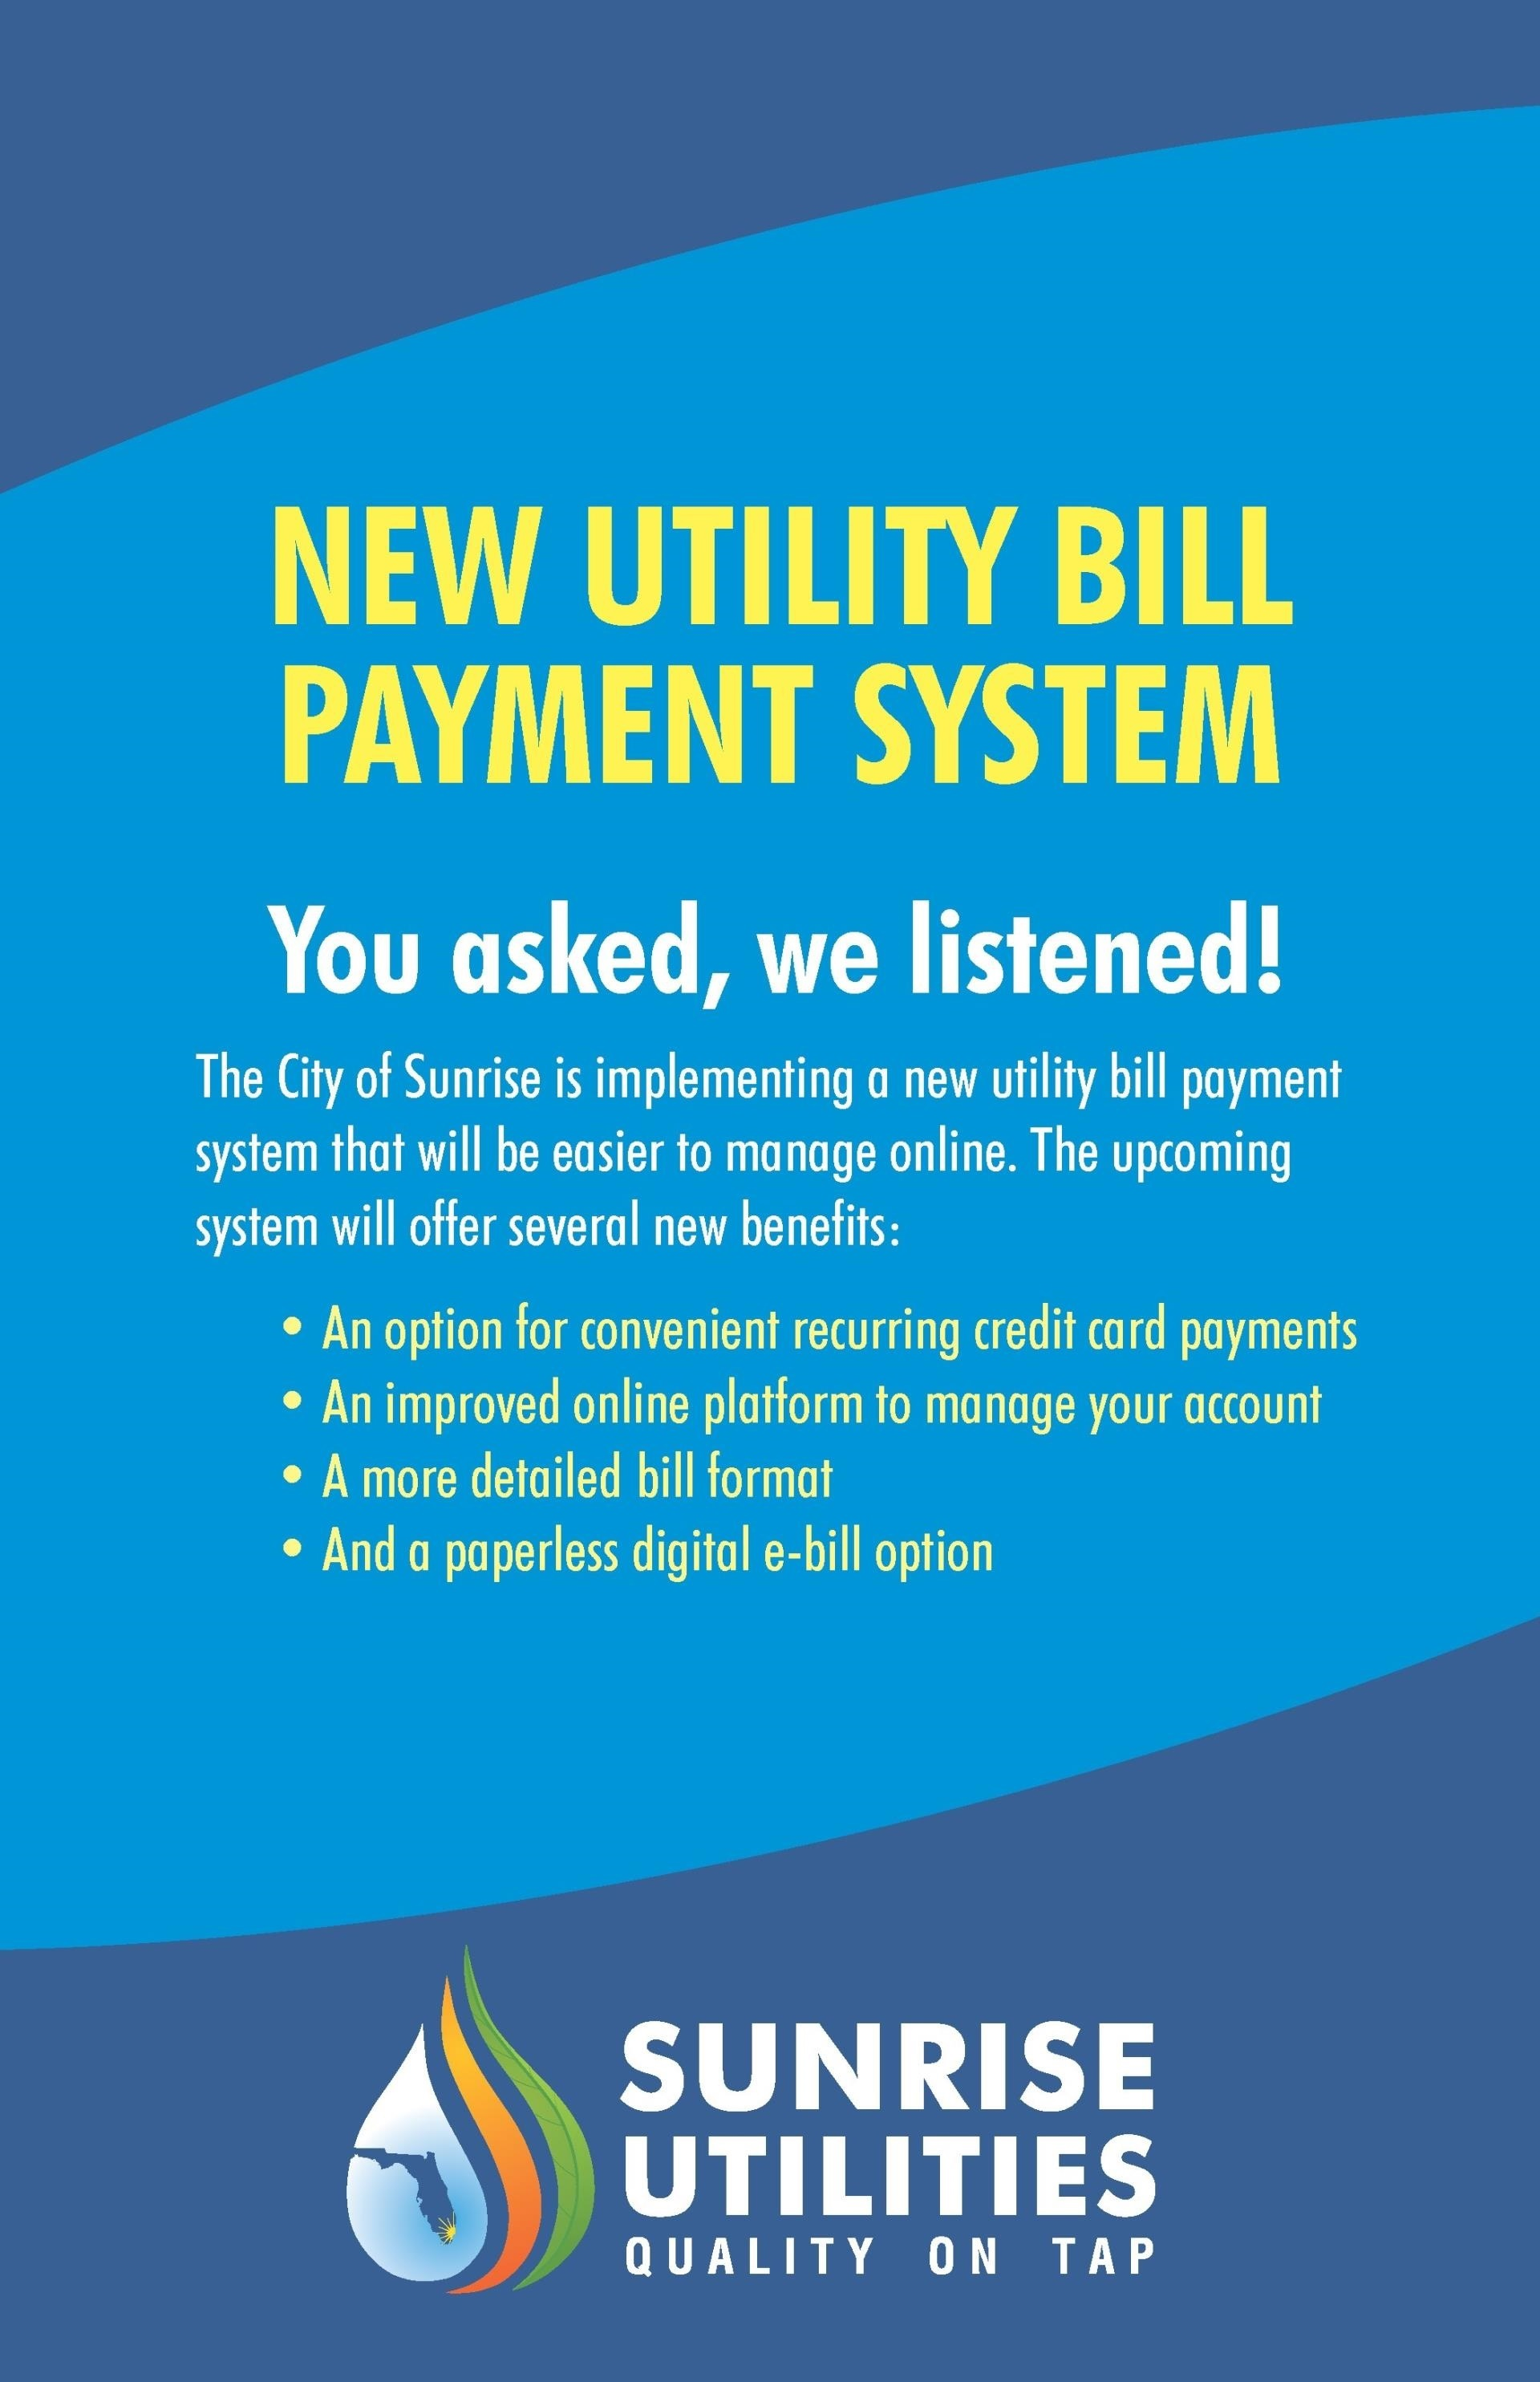 New Utility Bill Payments Coming Soon to Sunrise Utilities customers, including recurring credit card payments, an improved online platform, a more detailed and transparent bill format, and a paperless digital e-bill option